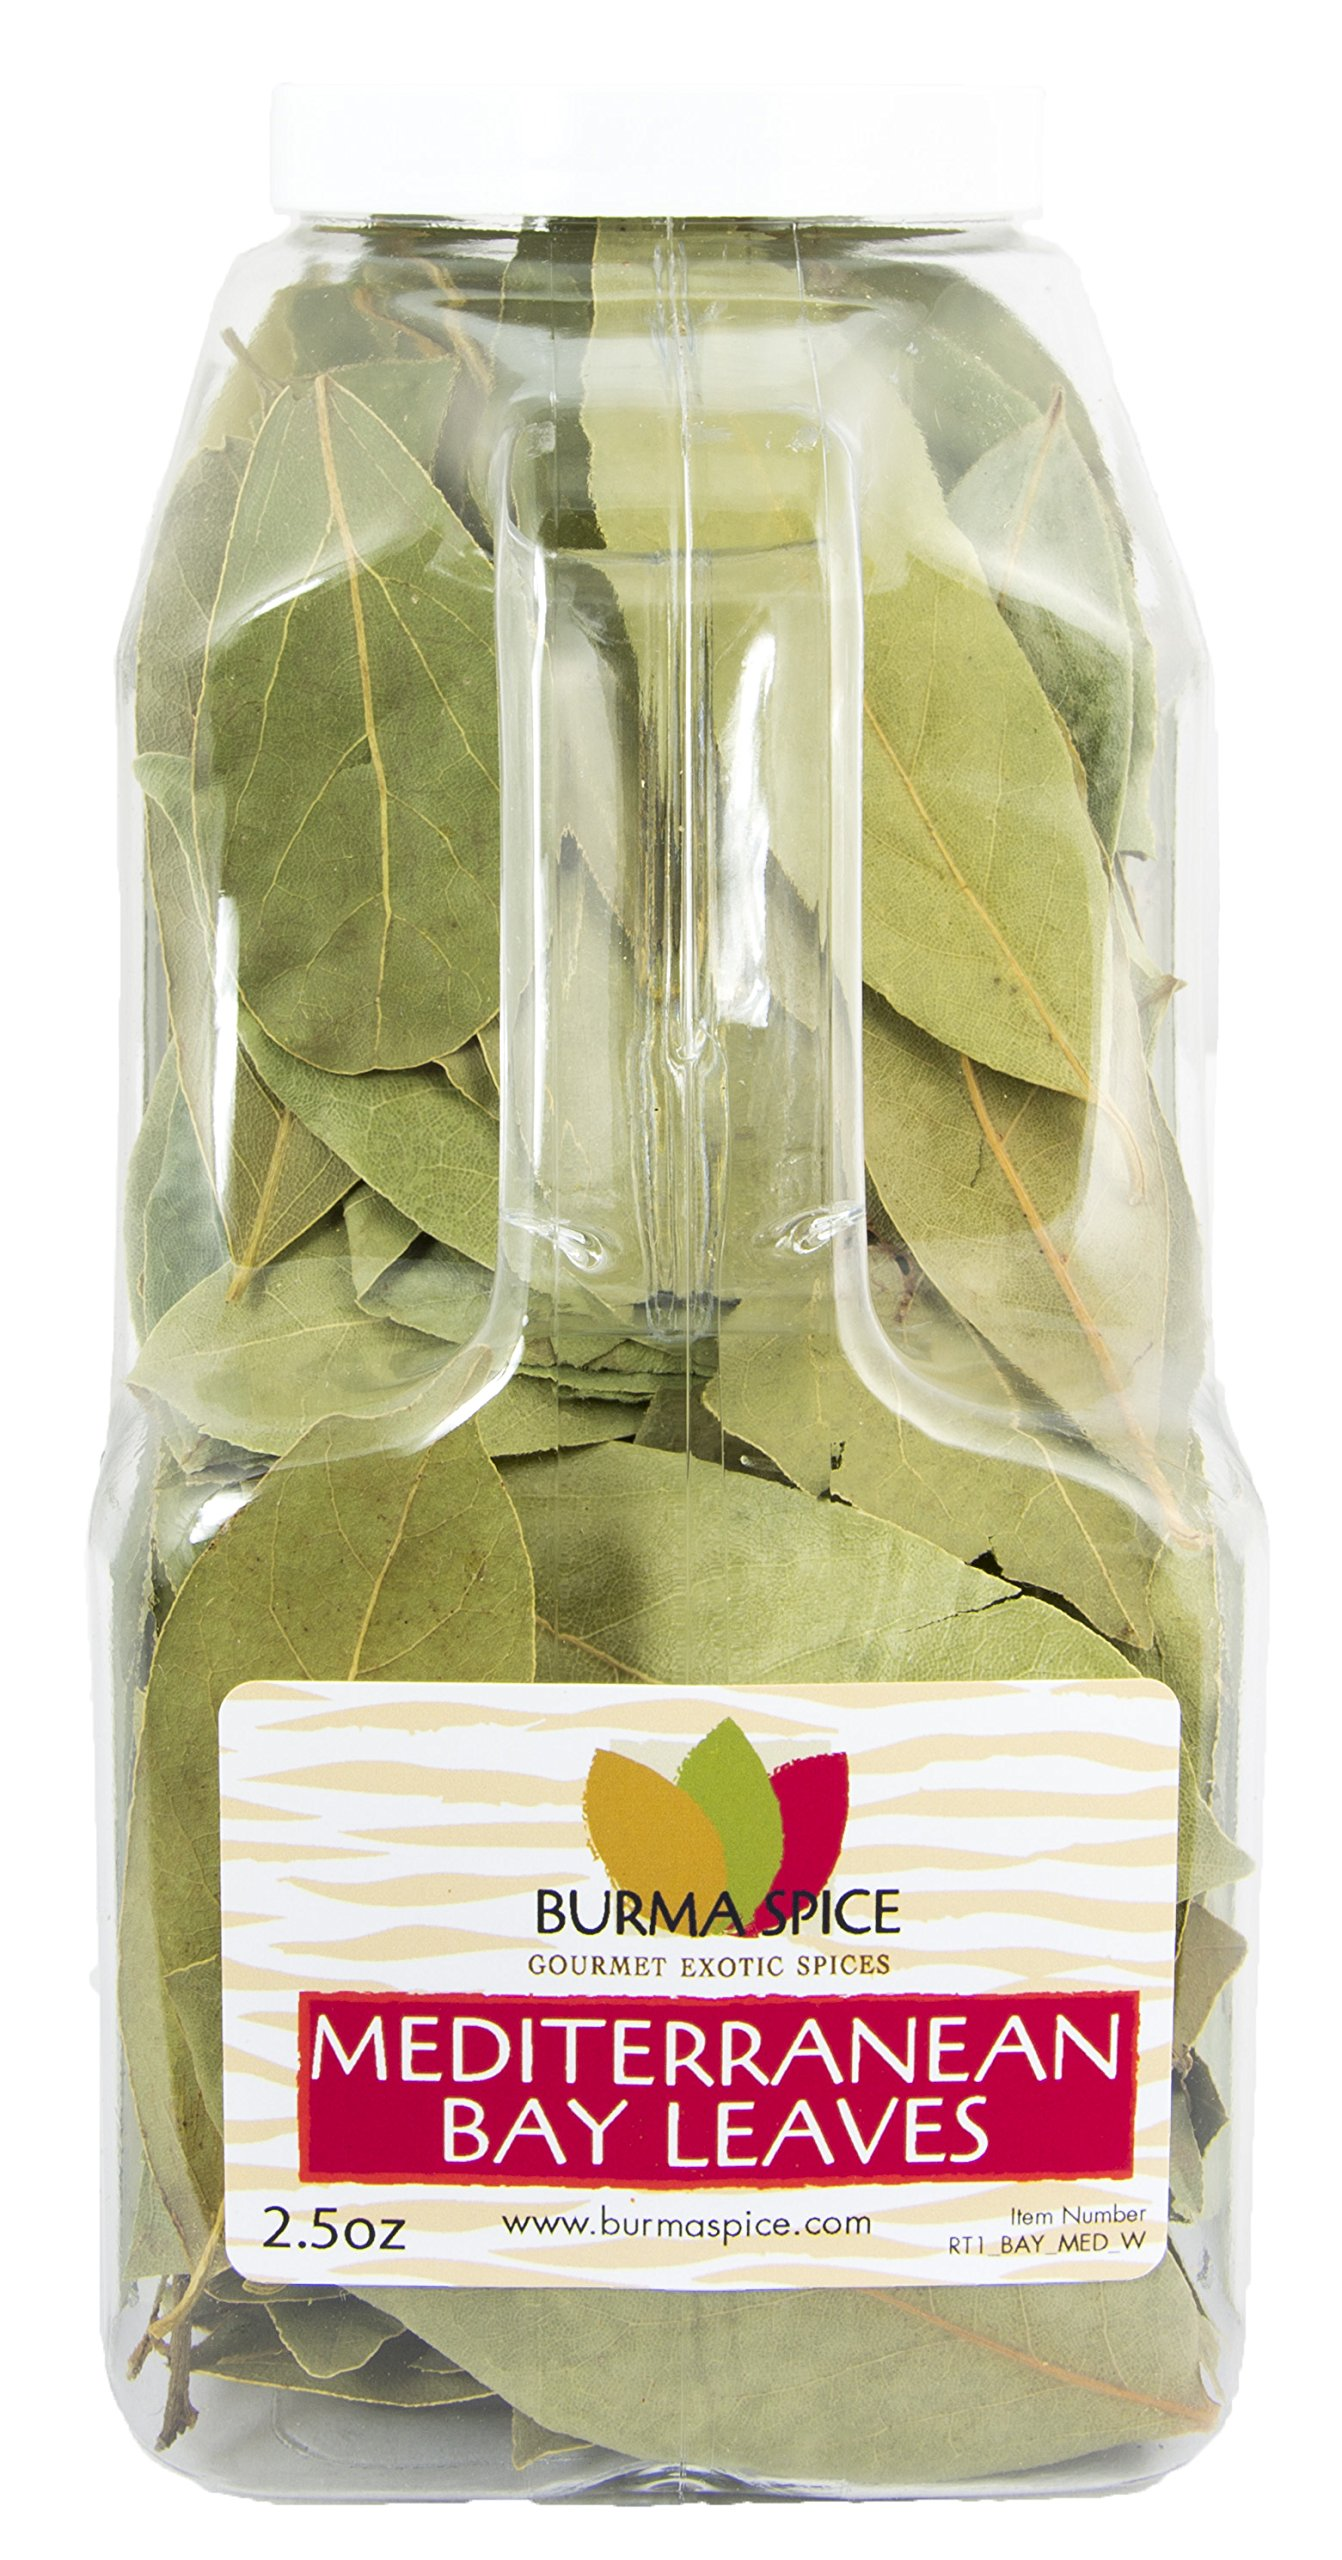 Mediterranean Bay Leaves : Laurel Leaf : Dried Herb Kosher 2.5oz. by Burma Spice (Image #1)